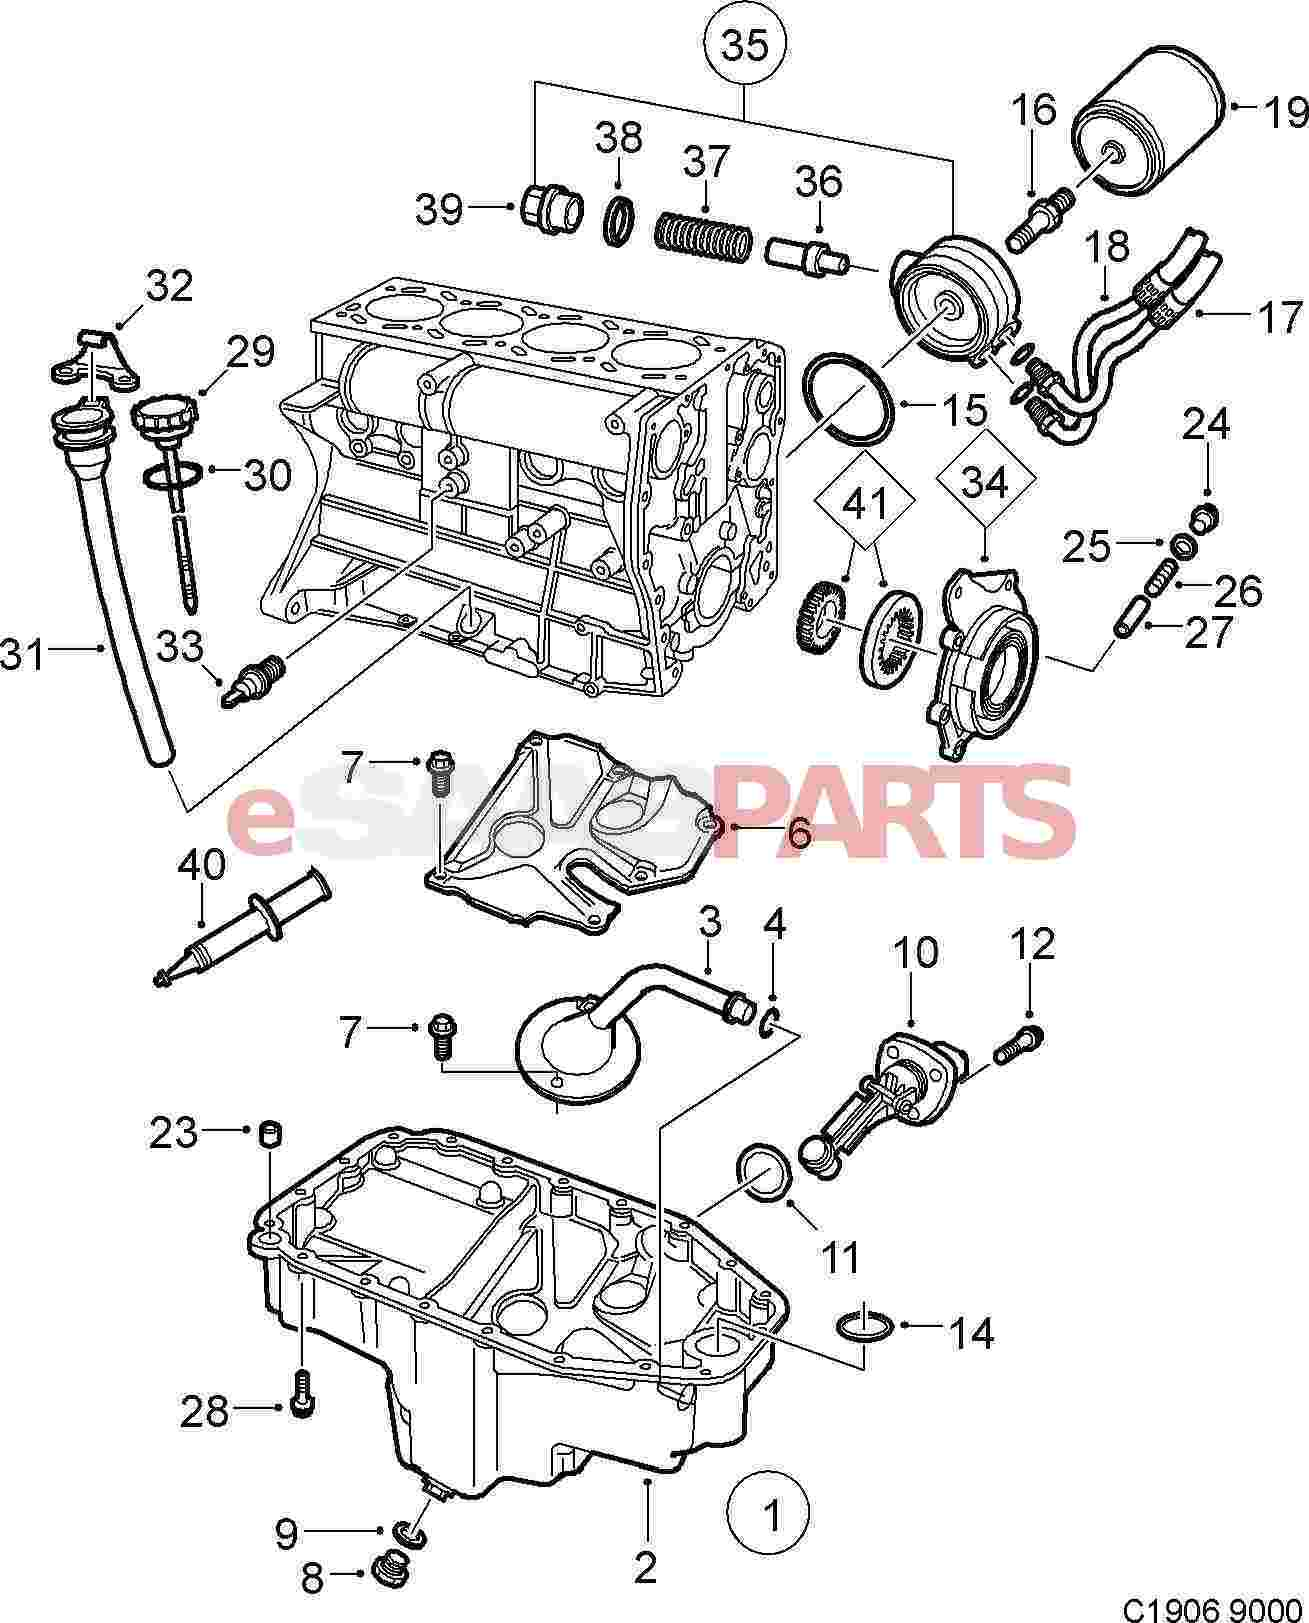 saab 900 2 3l engine diagram saab auto wiring diagram saab engine diagrams saab engine diagram